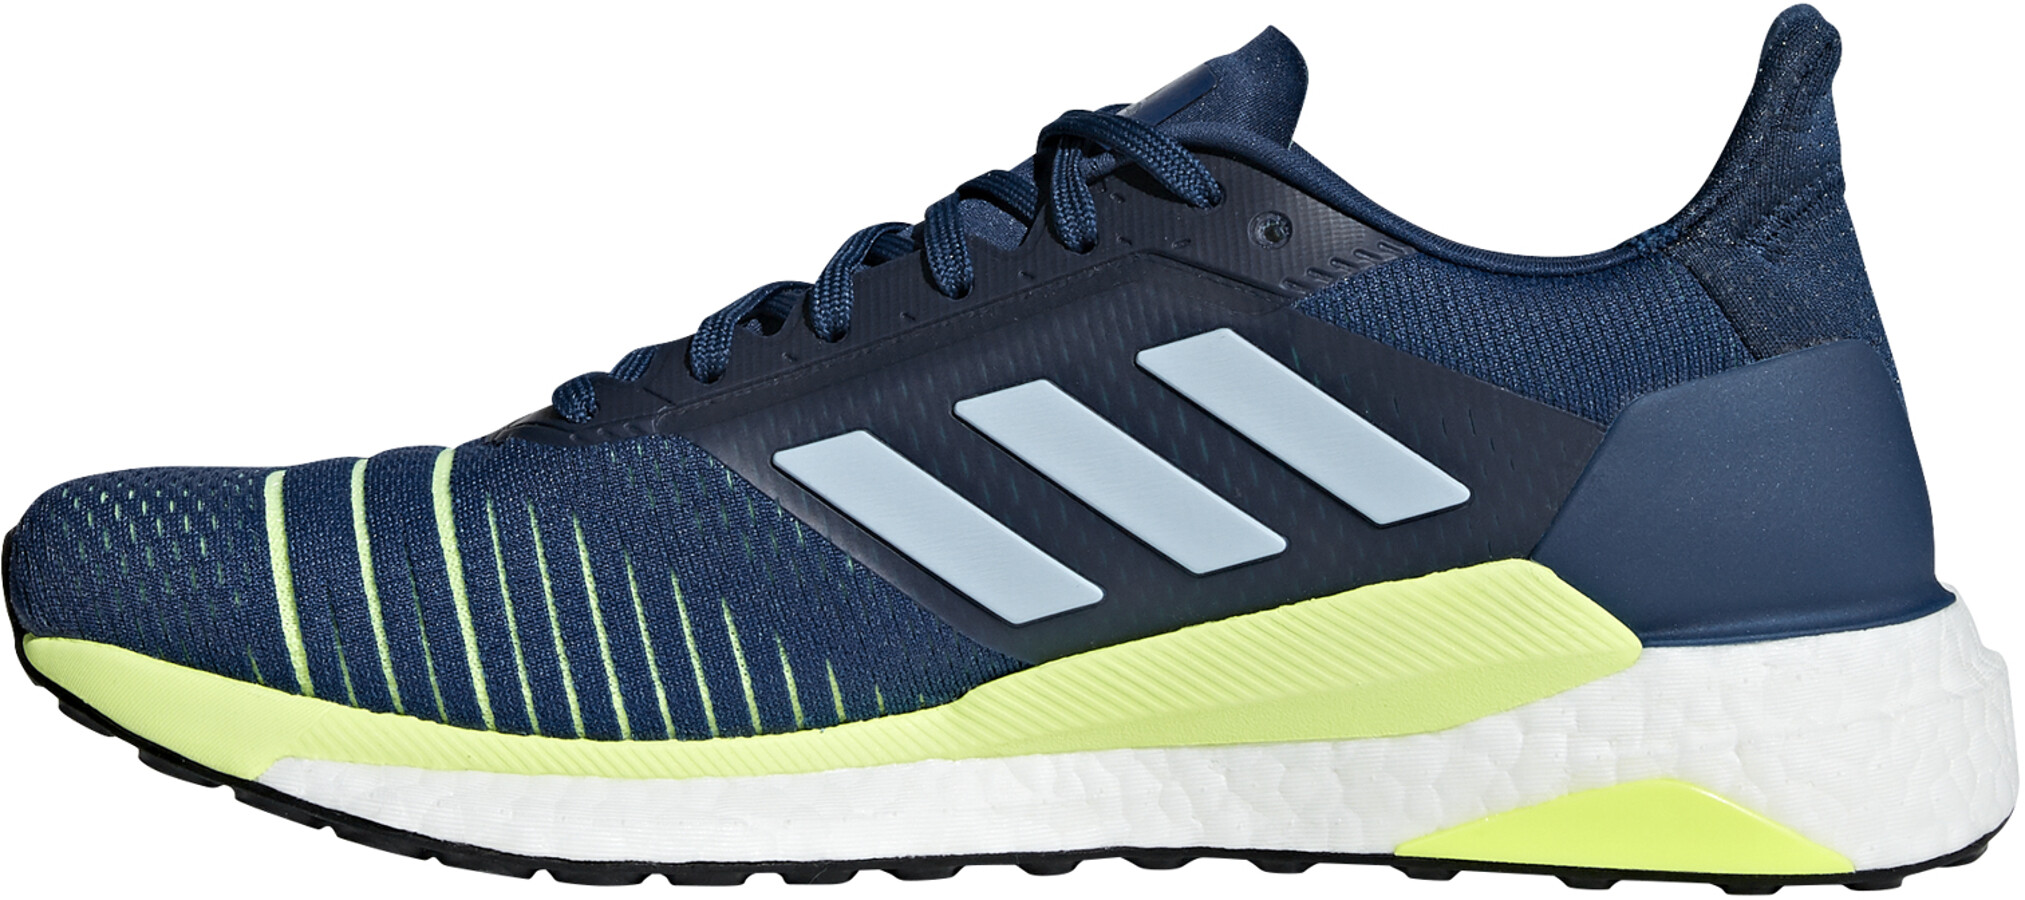 promo code 690b0 ebe58 adidas Solar Glide Running Shoes Men blue